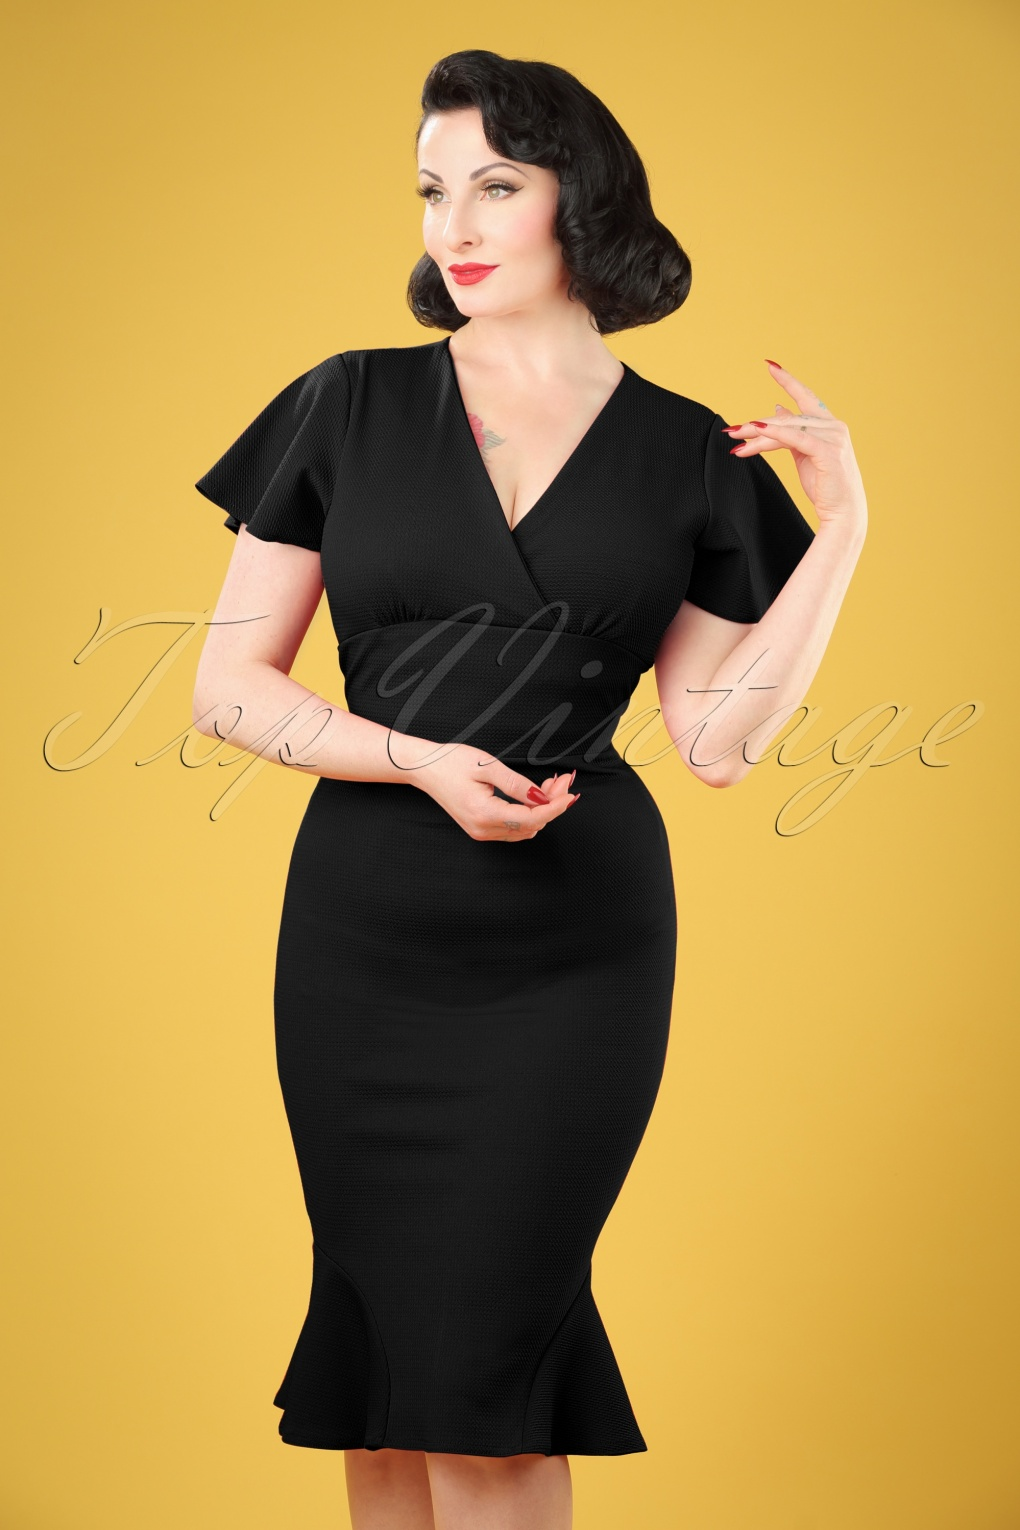 1940s Pinup Dresses for Sale 50s Peggy Waterfall Pencil Dress in Black £25.00 AT vintagedancer.com